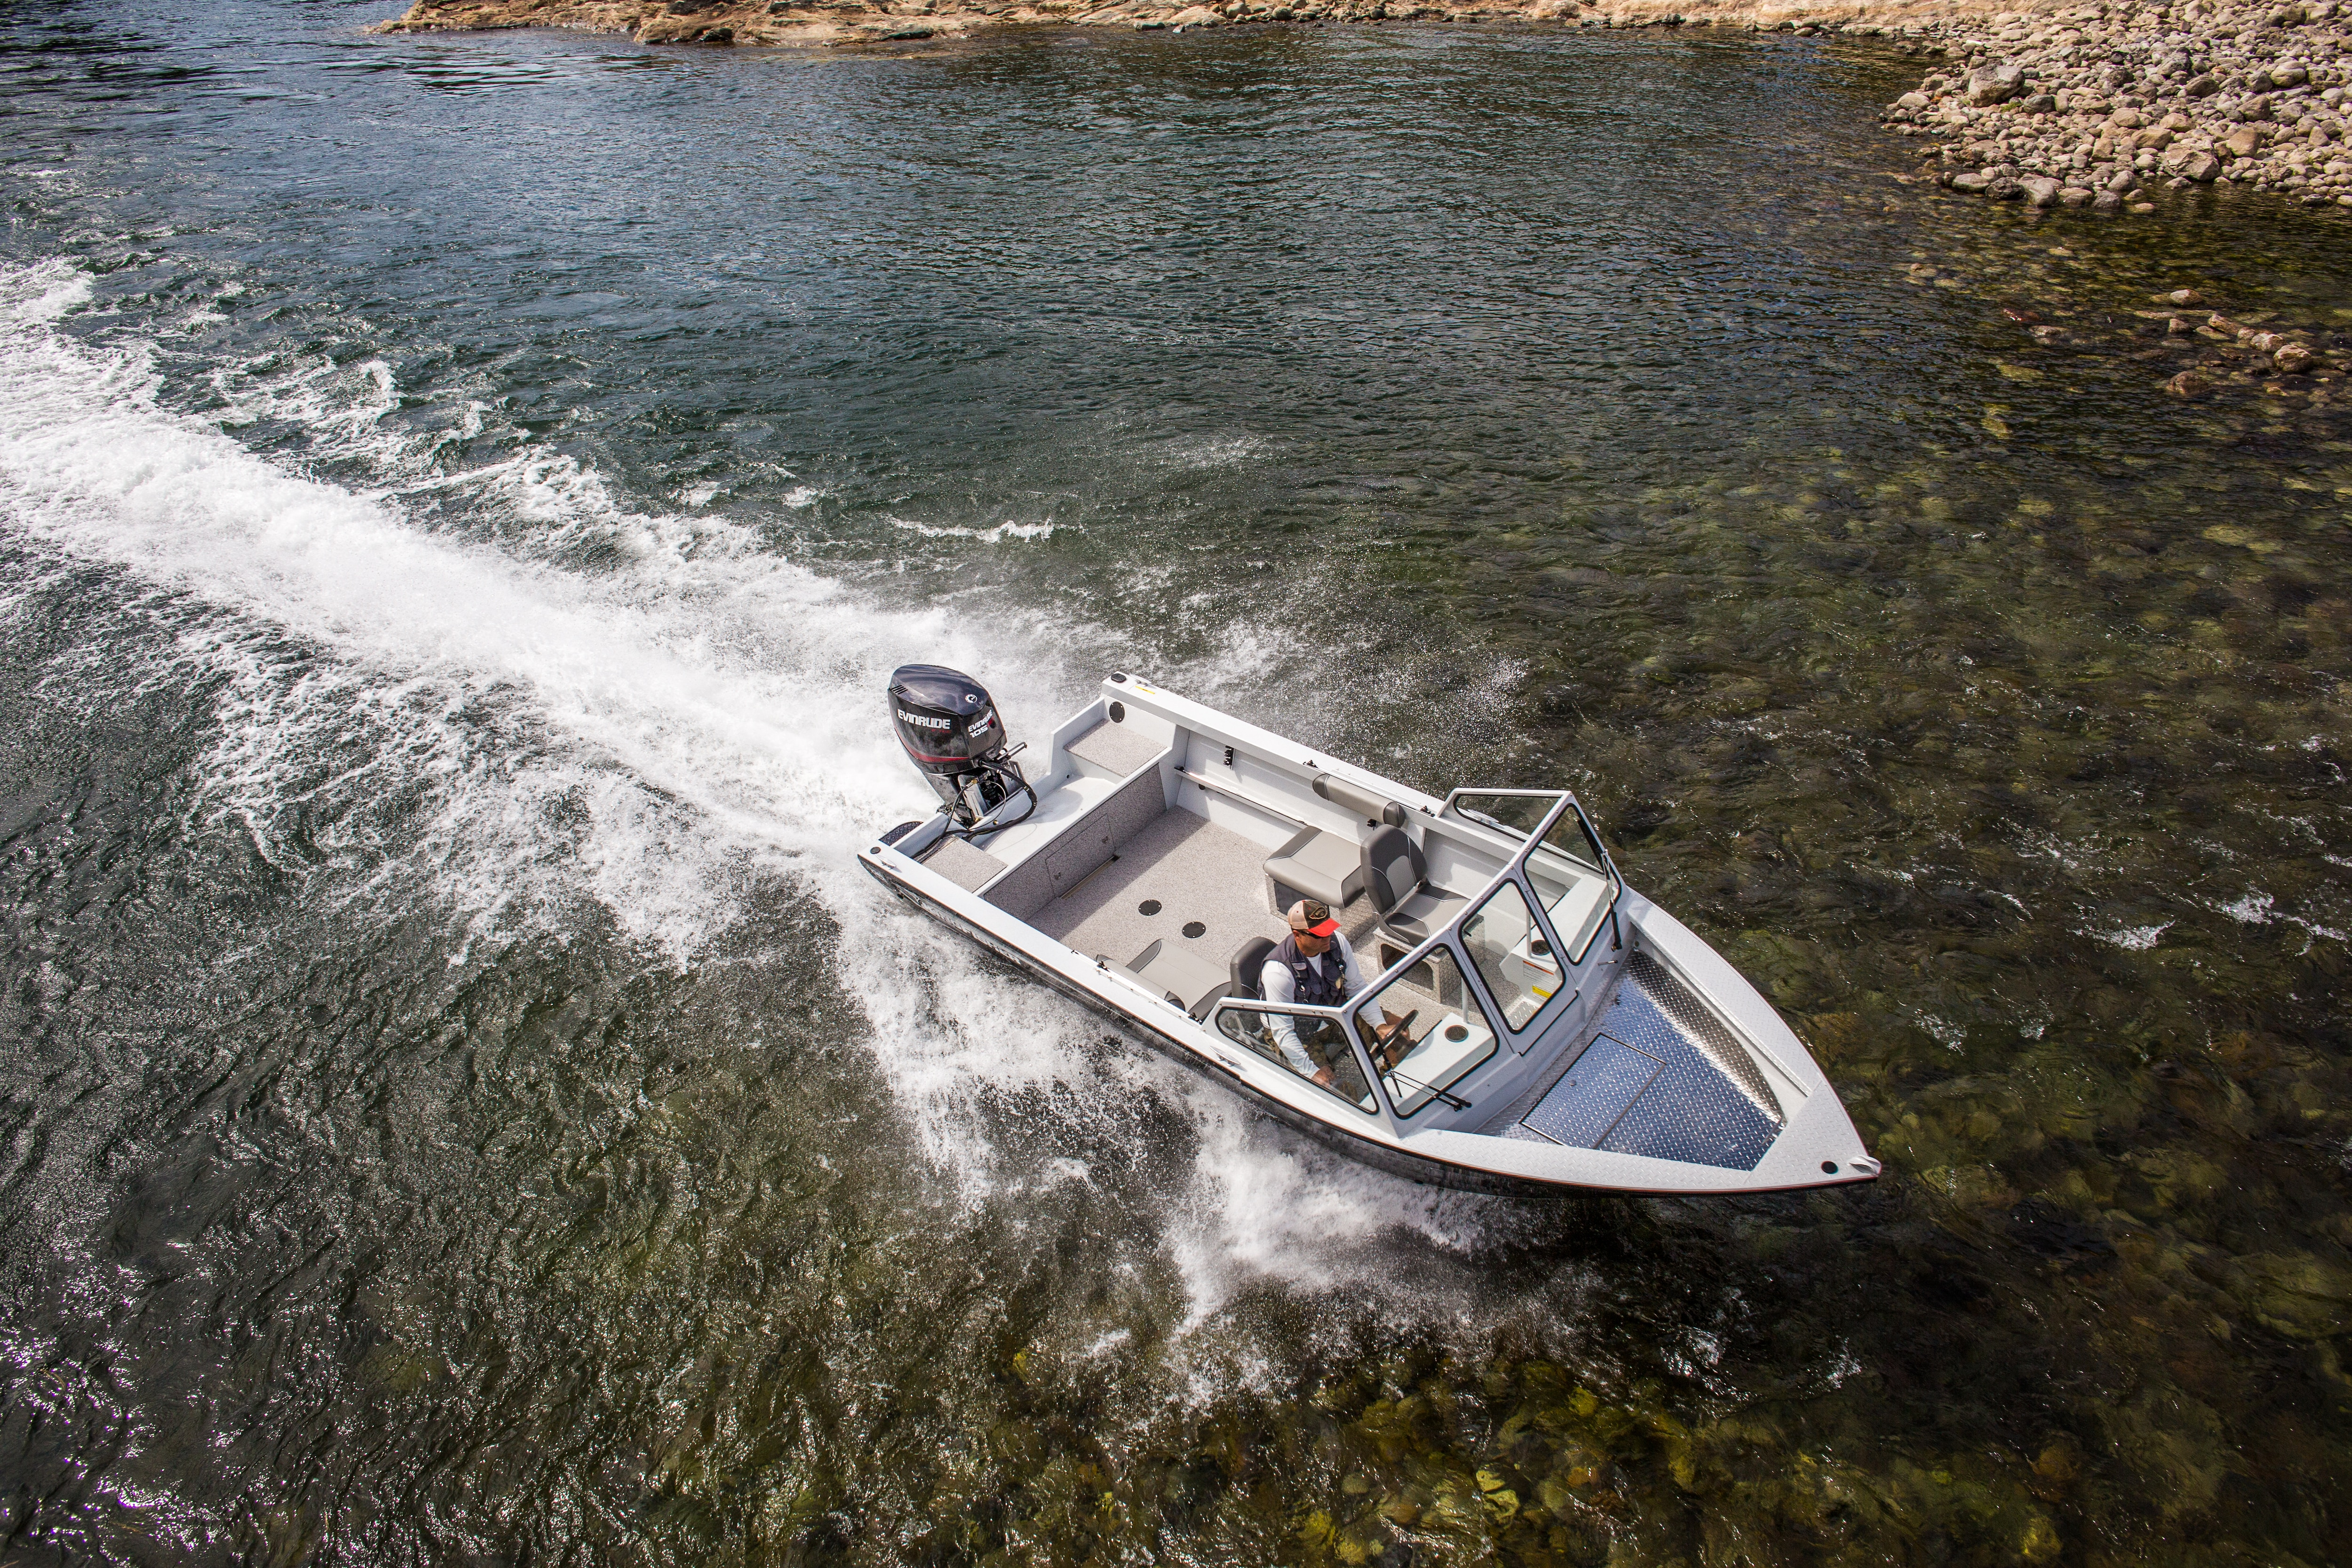 Man driving a Evinrude motorboat in shallow water